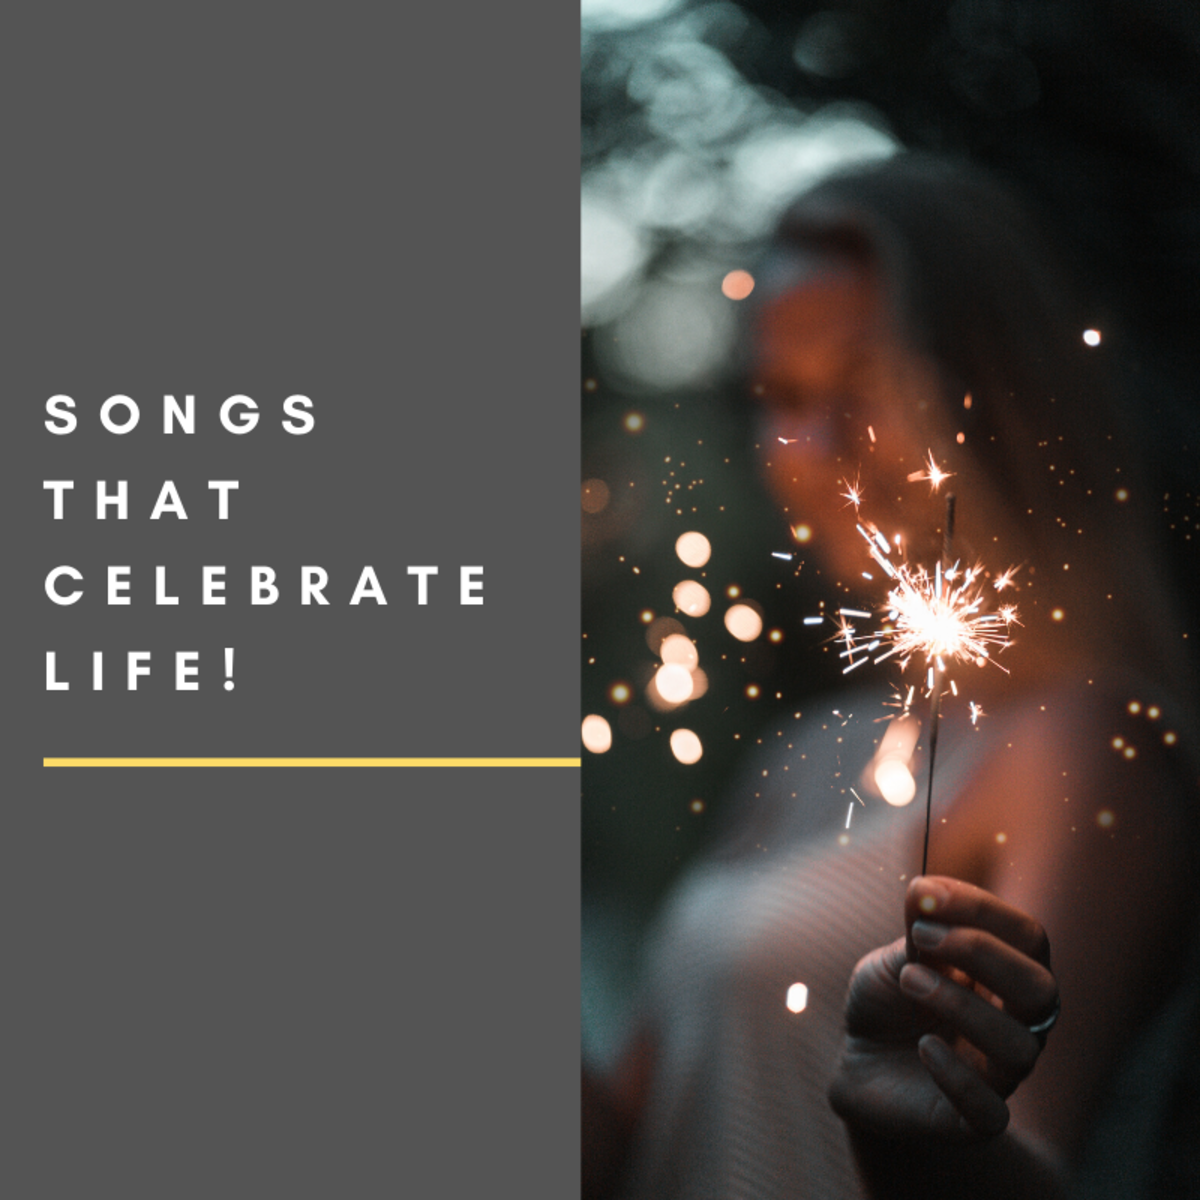 If you're looking for motivation, these fantastic songs will help you feel inspired!